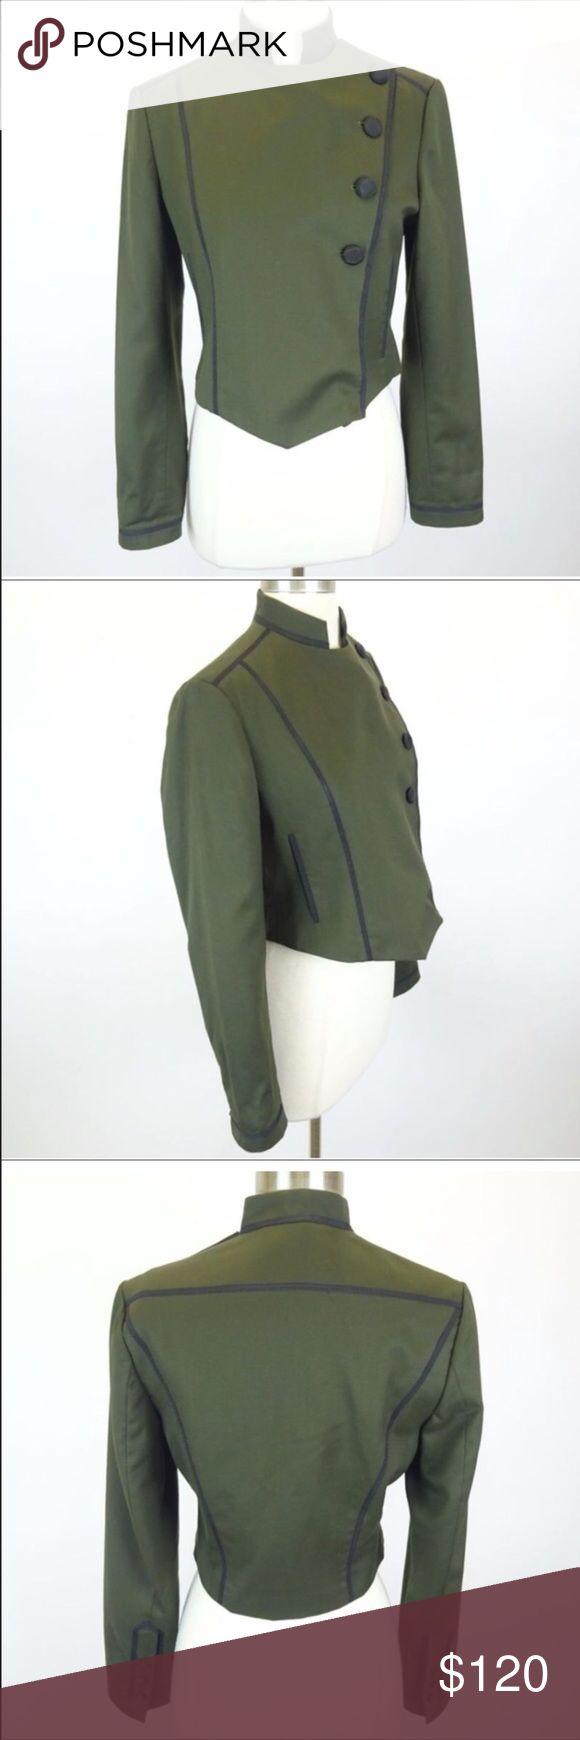 Khloe kardashian own Grace Sun cropped jacket Grace Sun Army Green Button up cropped jacket. Khloe's own item, from her charity auction on eBay. Fits like small/medium. See list of measurements above. Questions please let me know. Grace Sun Jackets & Coats